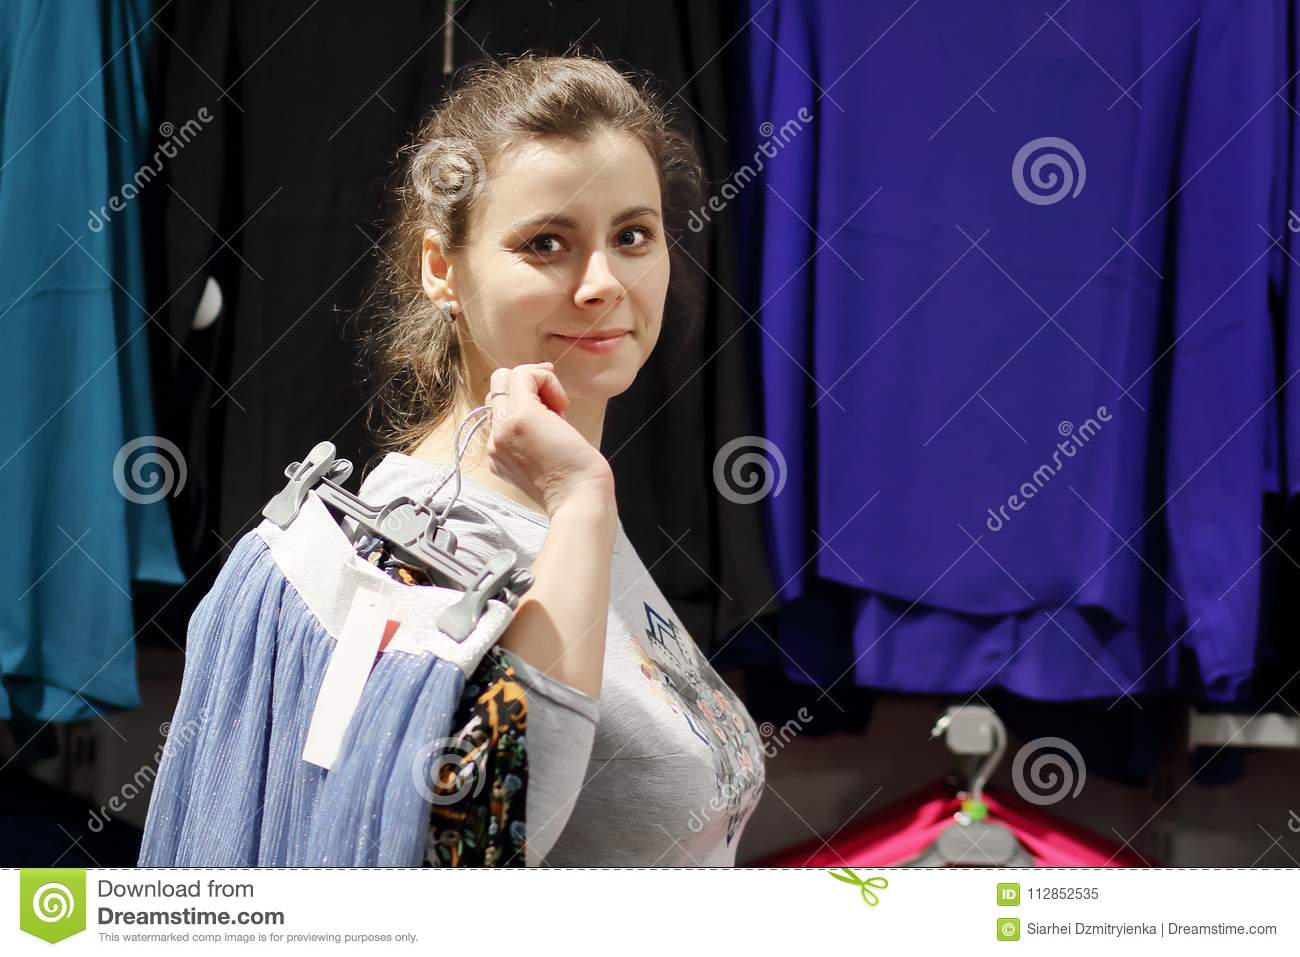 Girl in fashion boutique got clothes and goes to dressing room. Shopping concept. Attractive young woman chooses clothes in store